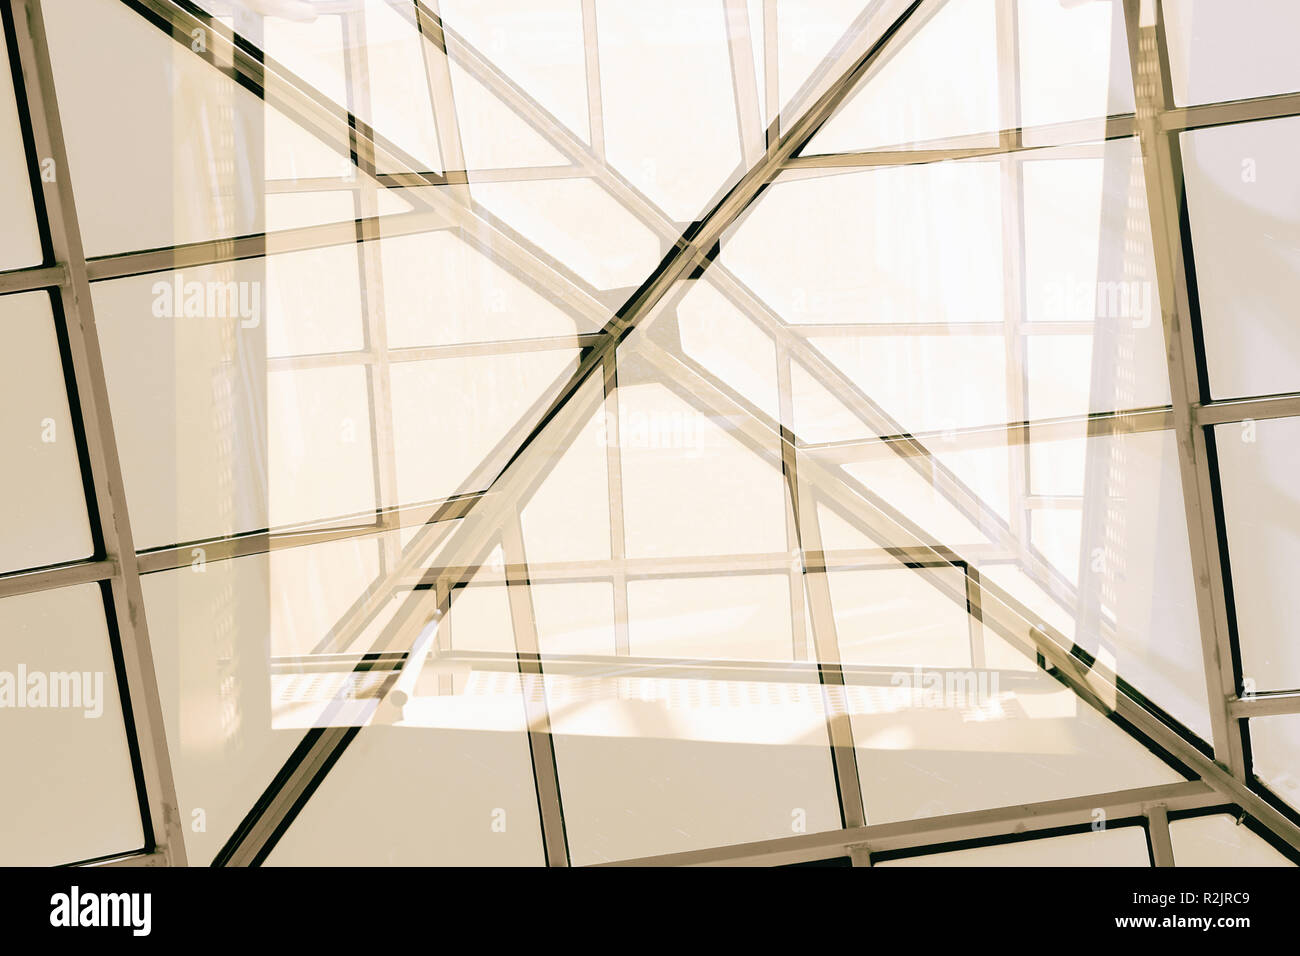 Roof and glass construction of a staircase with a square spiral staircase and railing - Stock Image